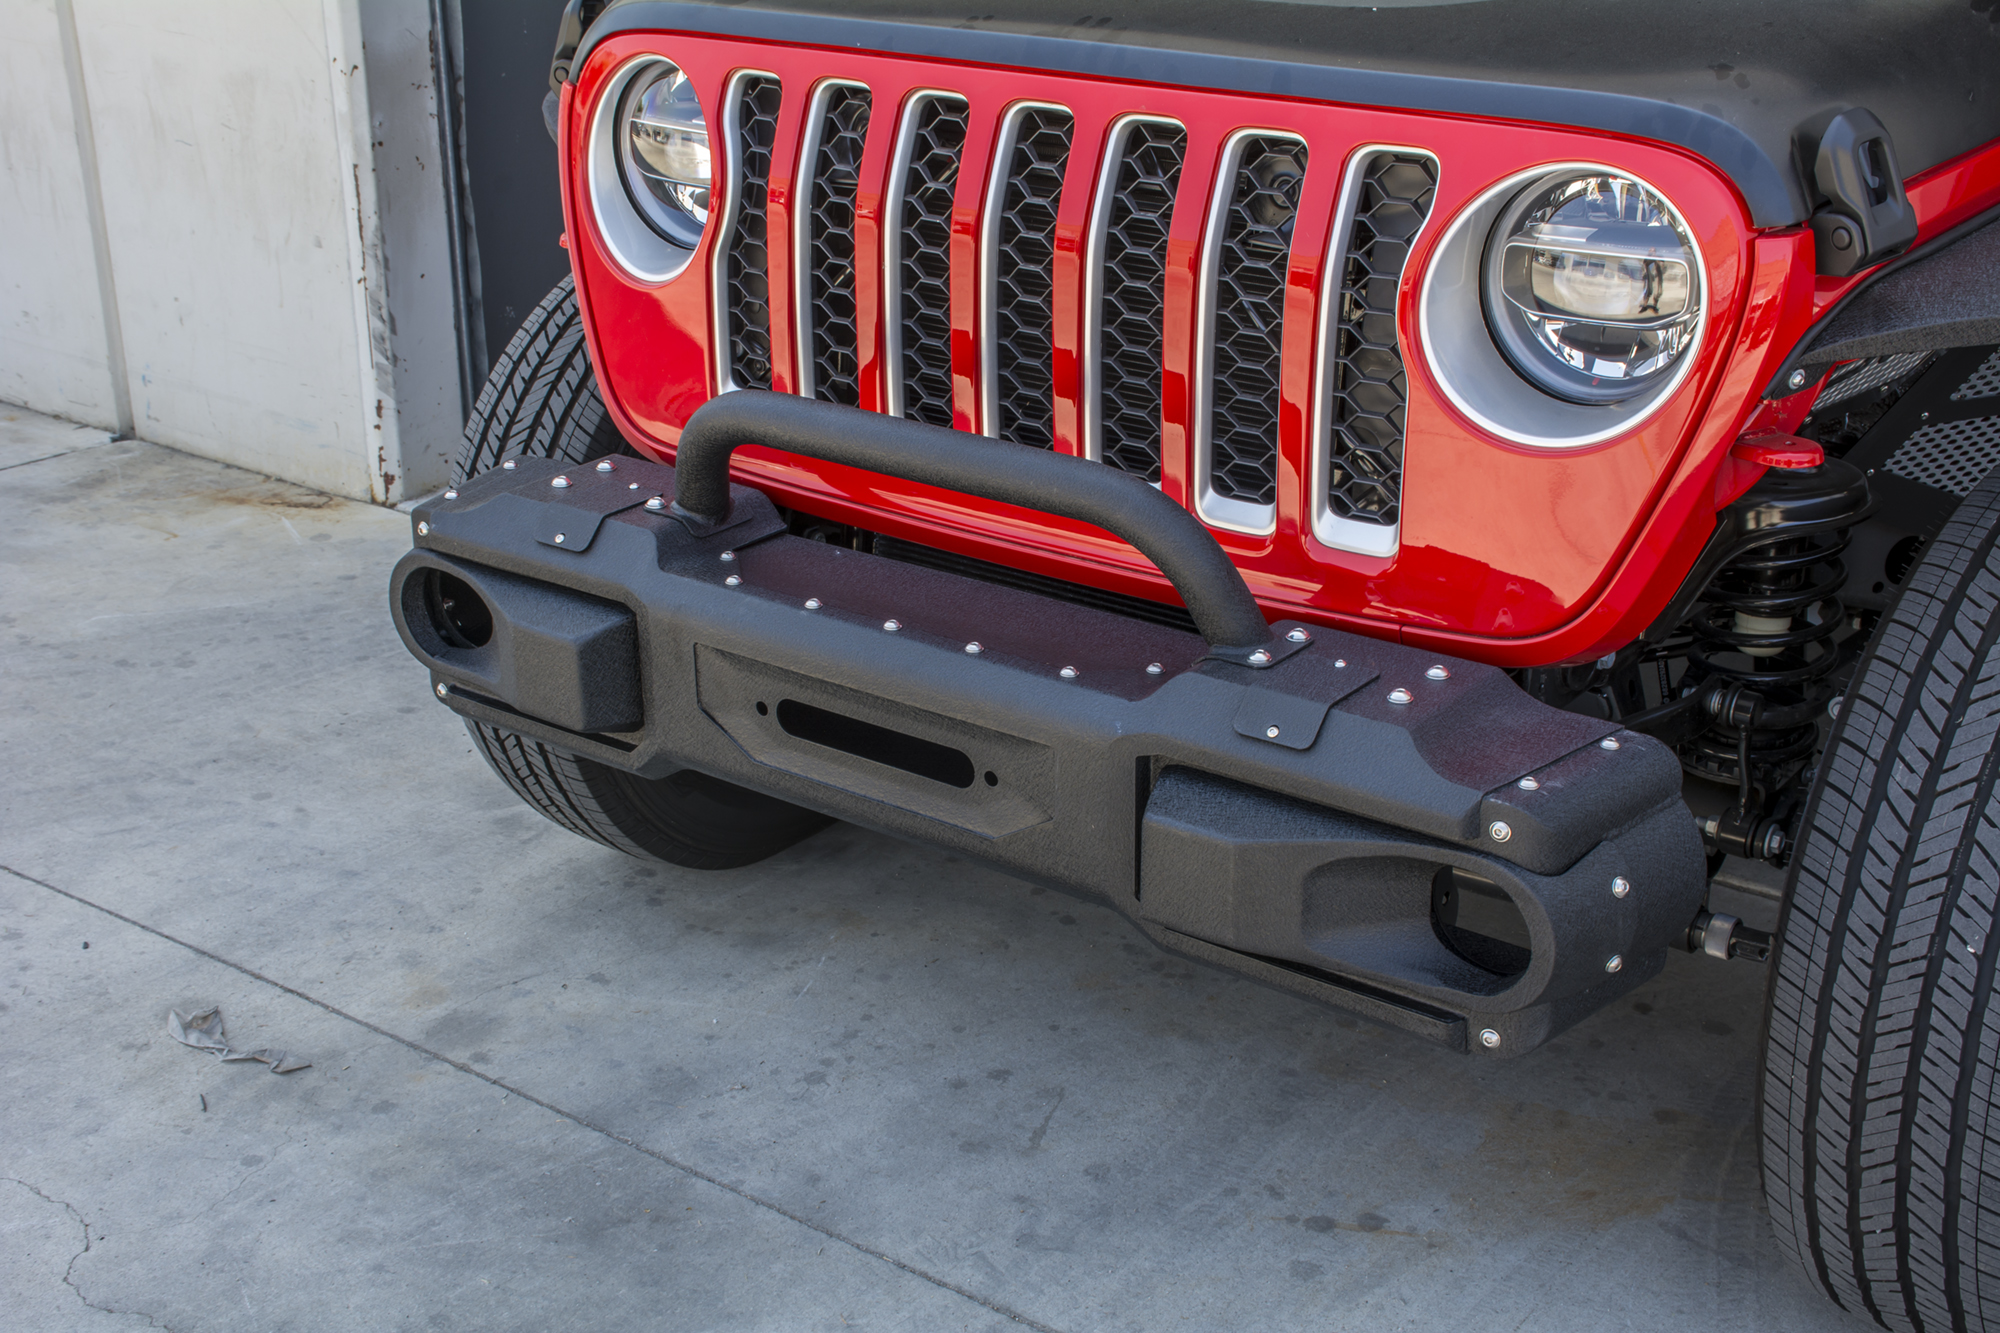 Jeep JL Modular Front Bumper with Bull Bar 18-Present Wrangler JL DV8 Offroad